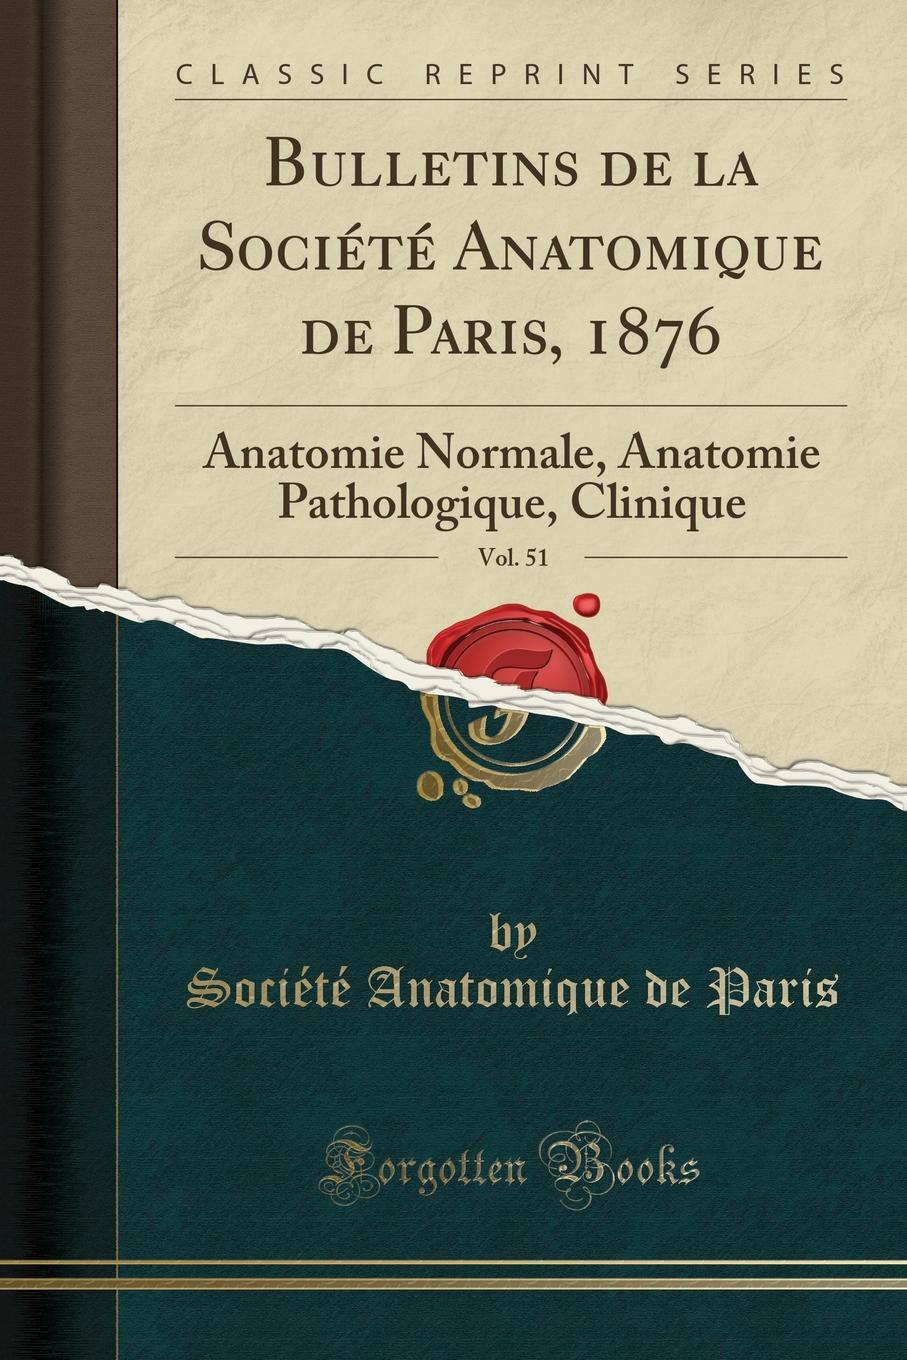 Société Anatomique de Paris Bulletins de la Societe Anatomique de Paris, 1876, Vol. 51. Anatomie Normale, Anatomie Pathologique, Clinique (Classic Reprint)